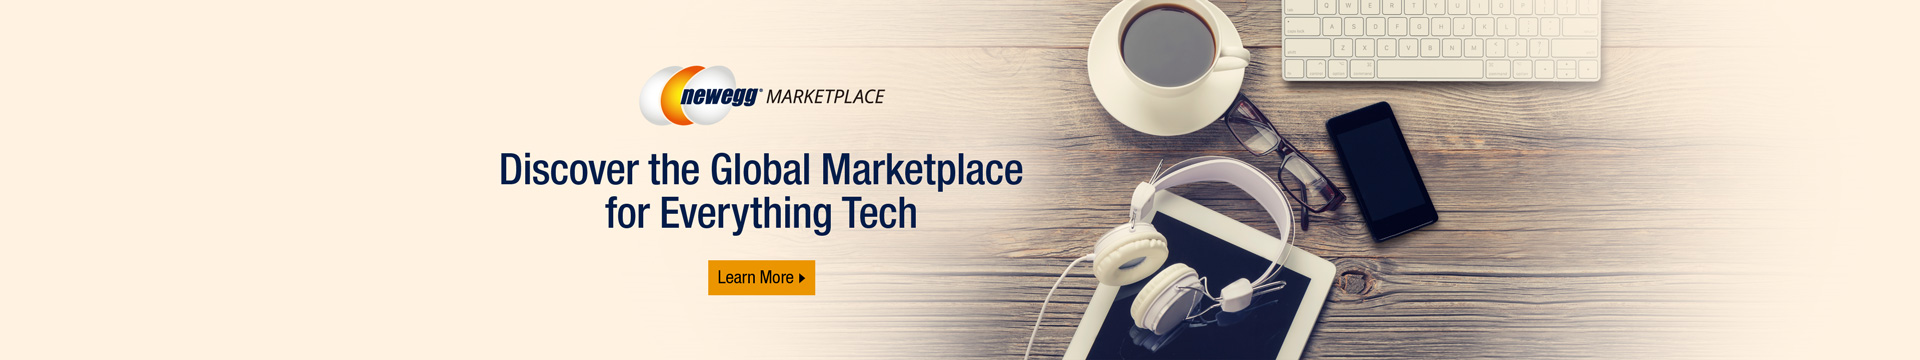 Discover the Global Marketplace for Everything Tech